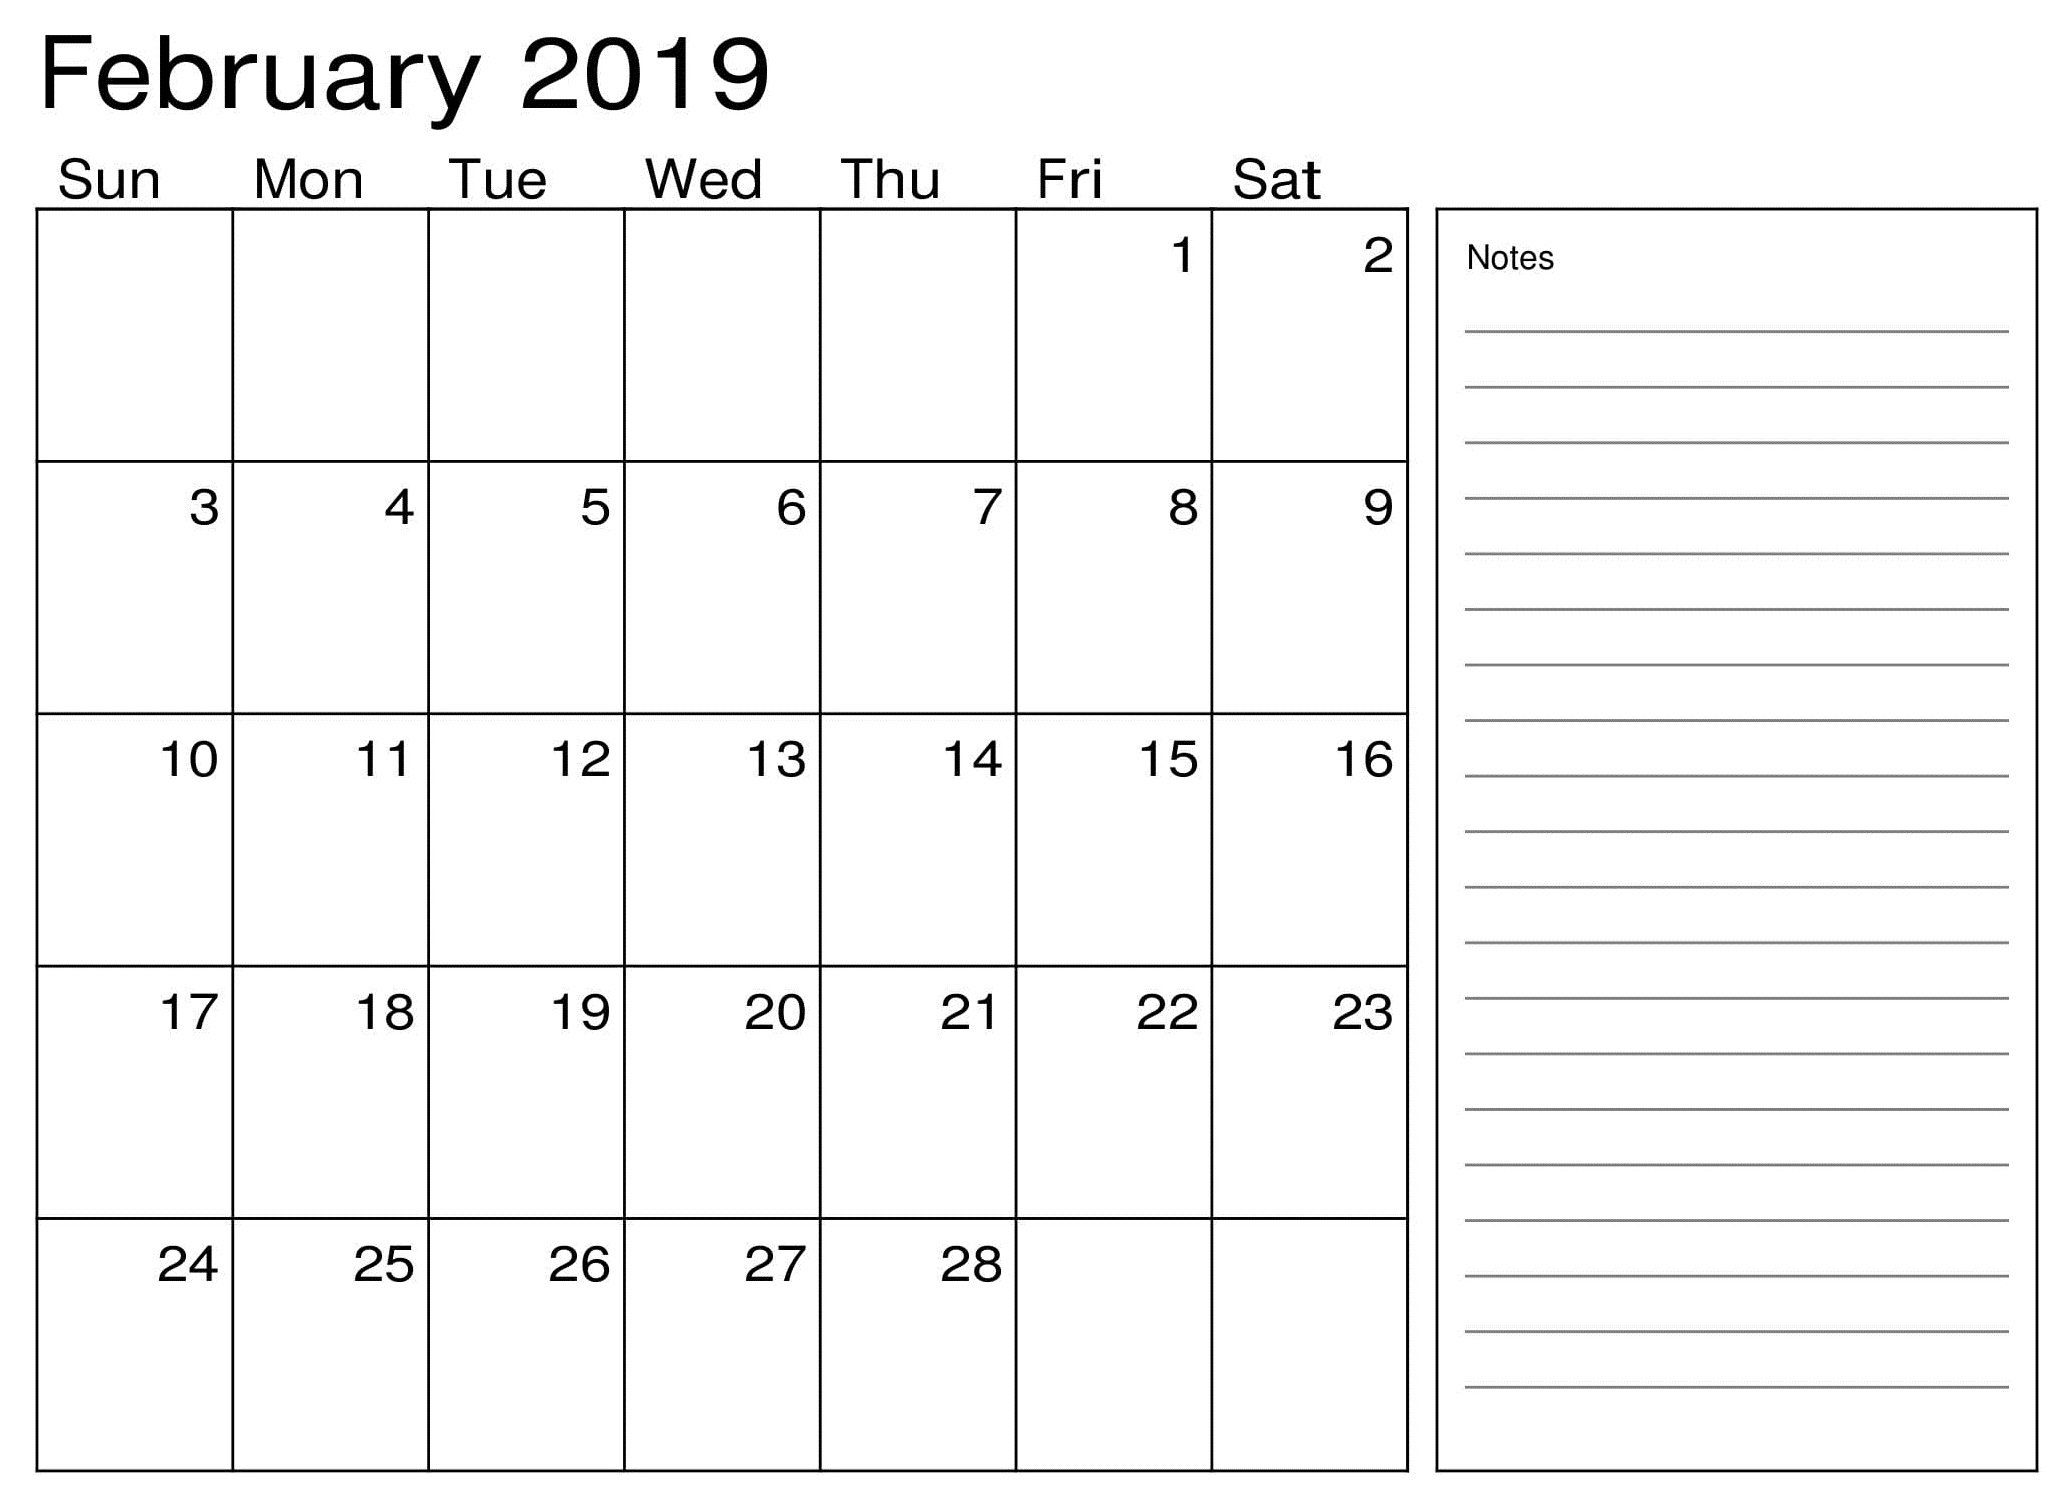 Calendar February 2019 Printable With Notes - Printable Calendar with regard to Blank Calendar Template With Notes